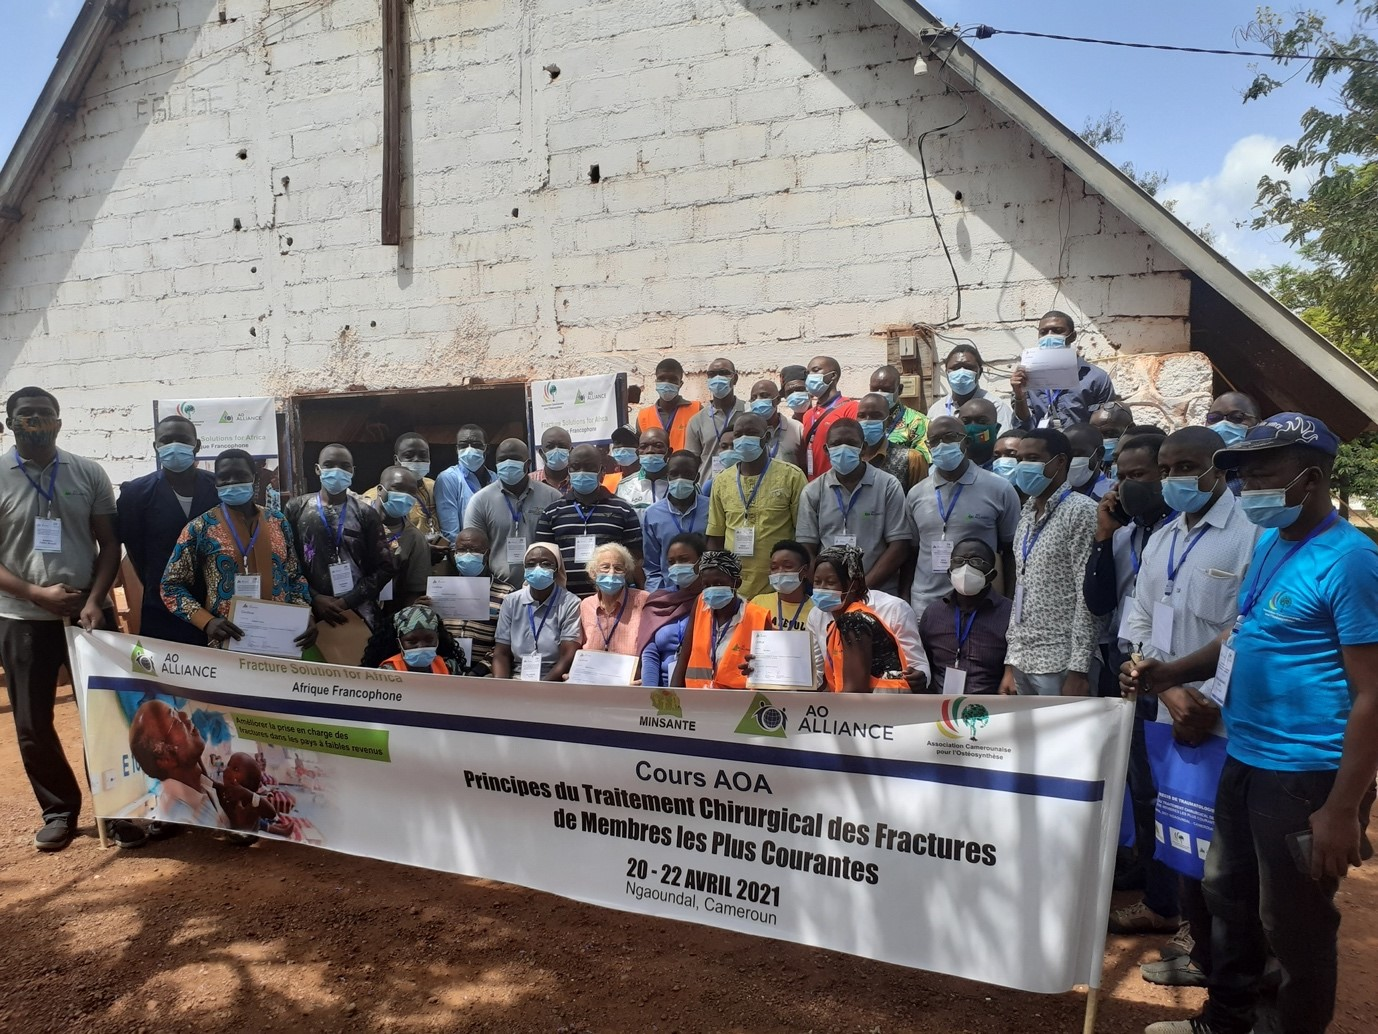 First AO Alliance educational events for the Adamaoua region held in Ngaoundal, Cameroon